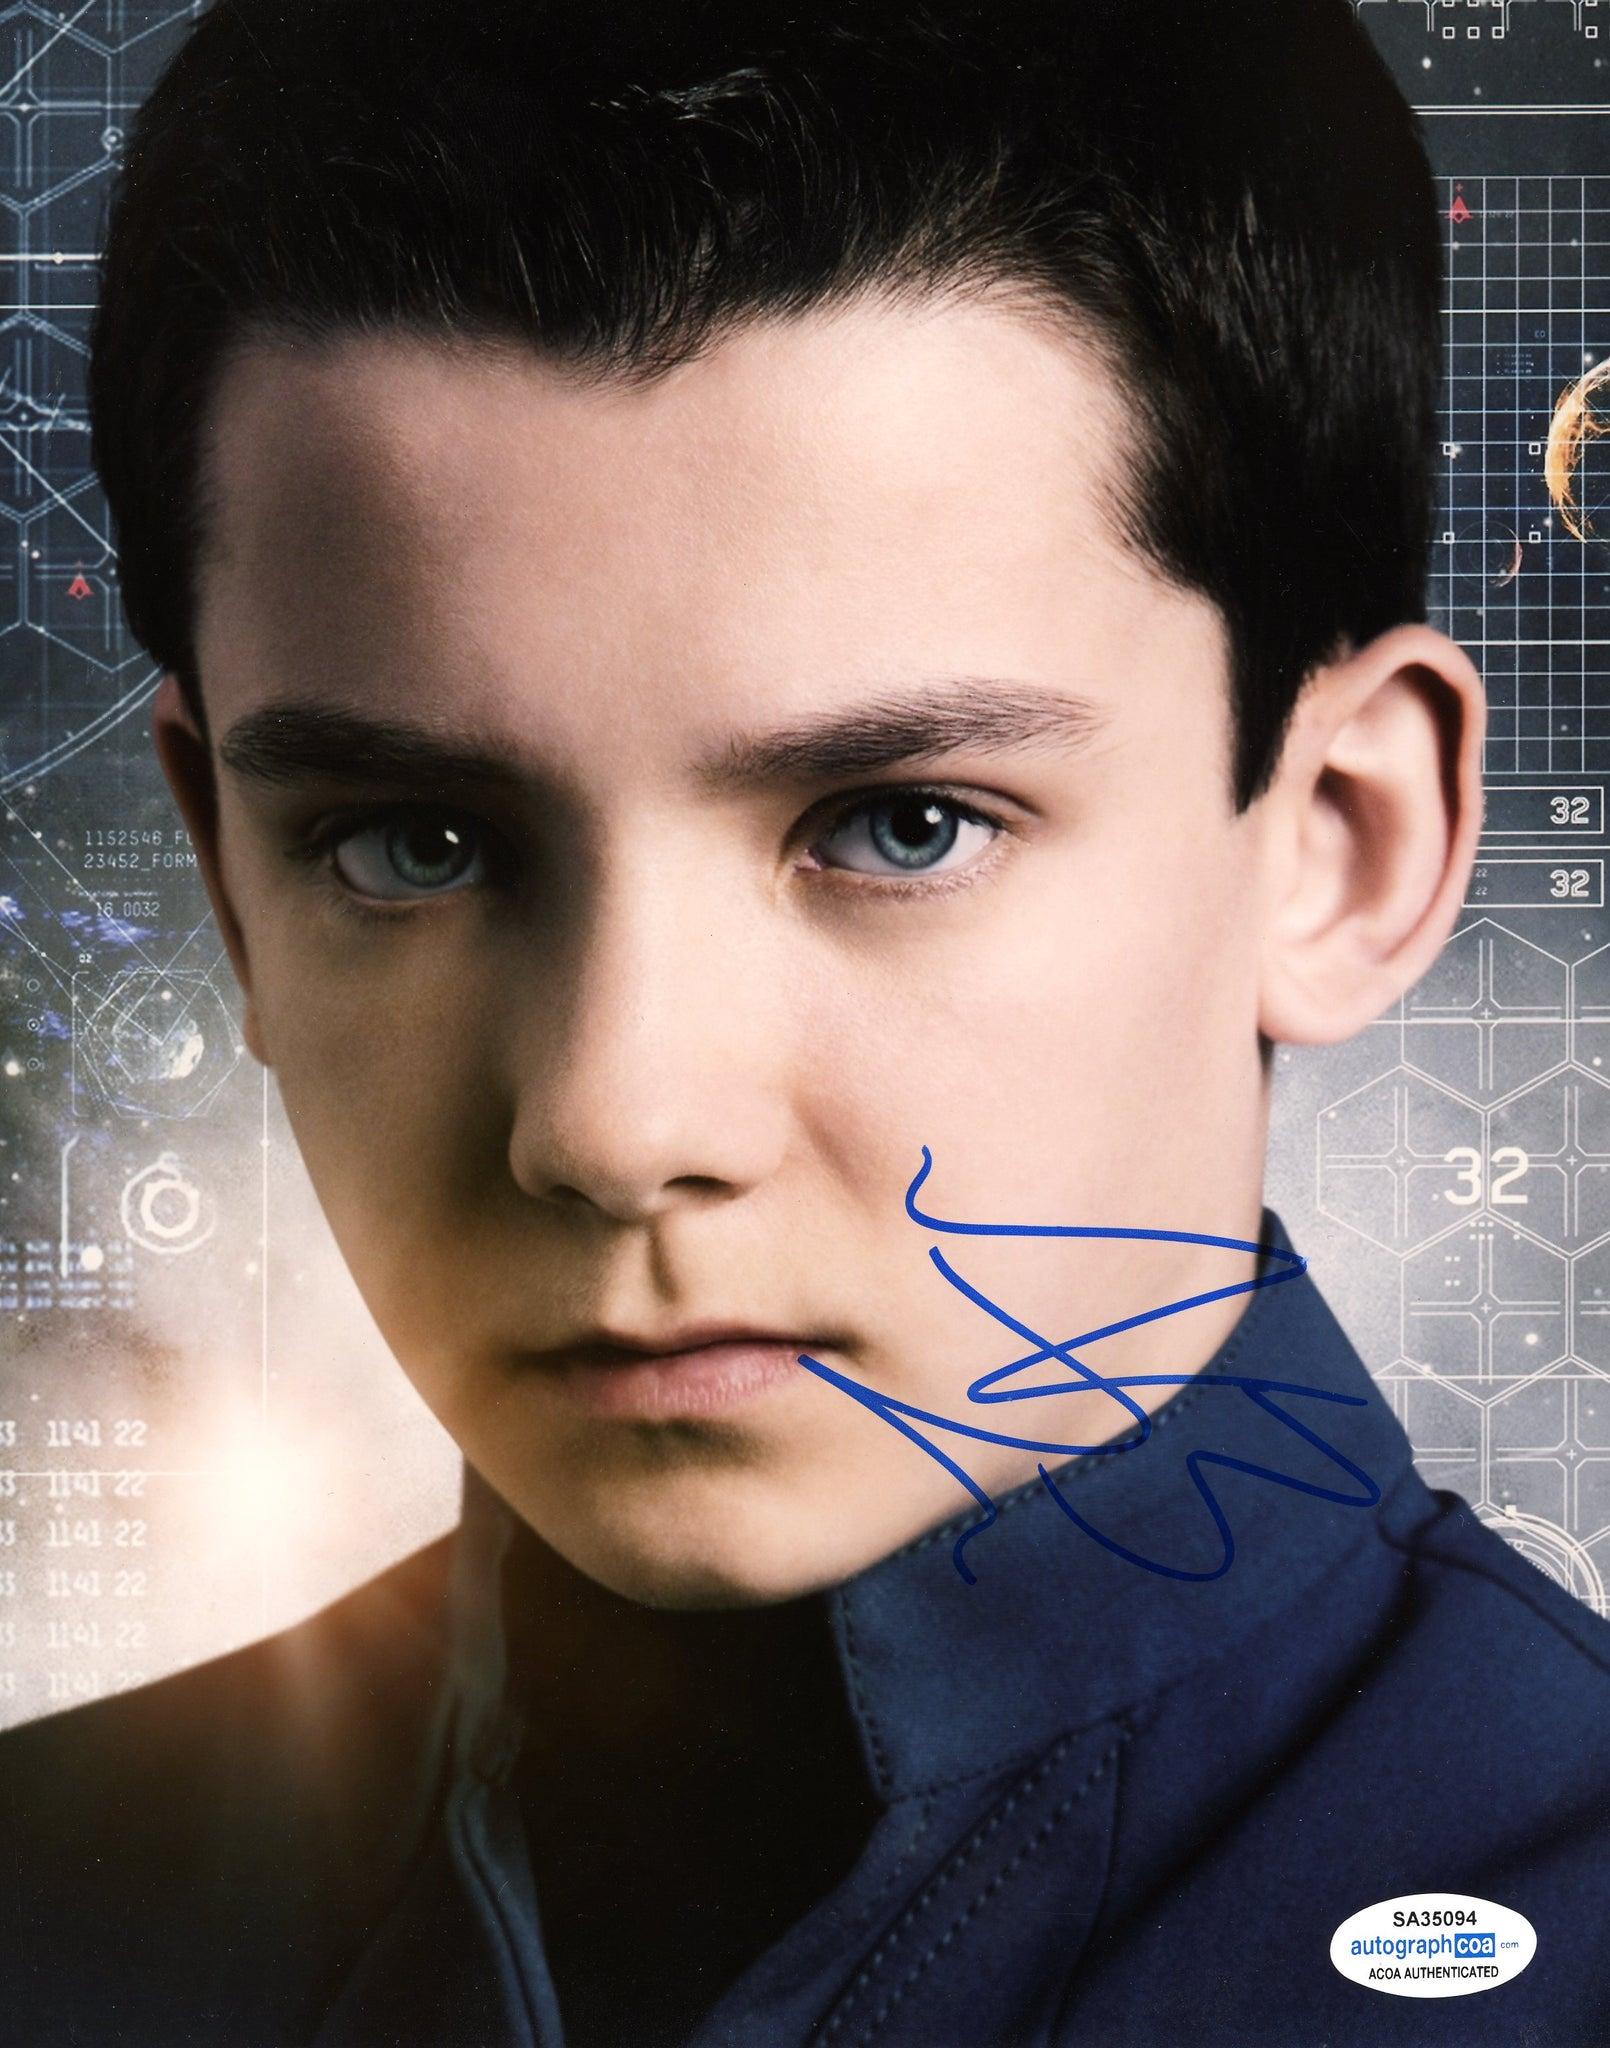 Asa Butterfield Ender's Game Signed Autograph 8x10 Photo ACOA - Outlaw Hobbies Authentic Autographs